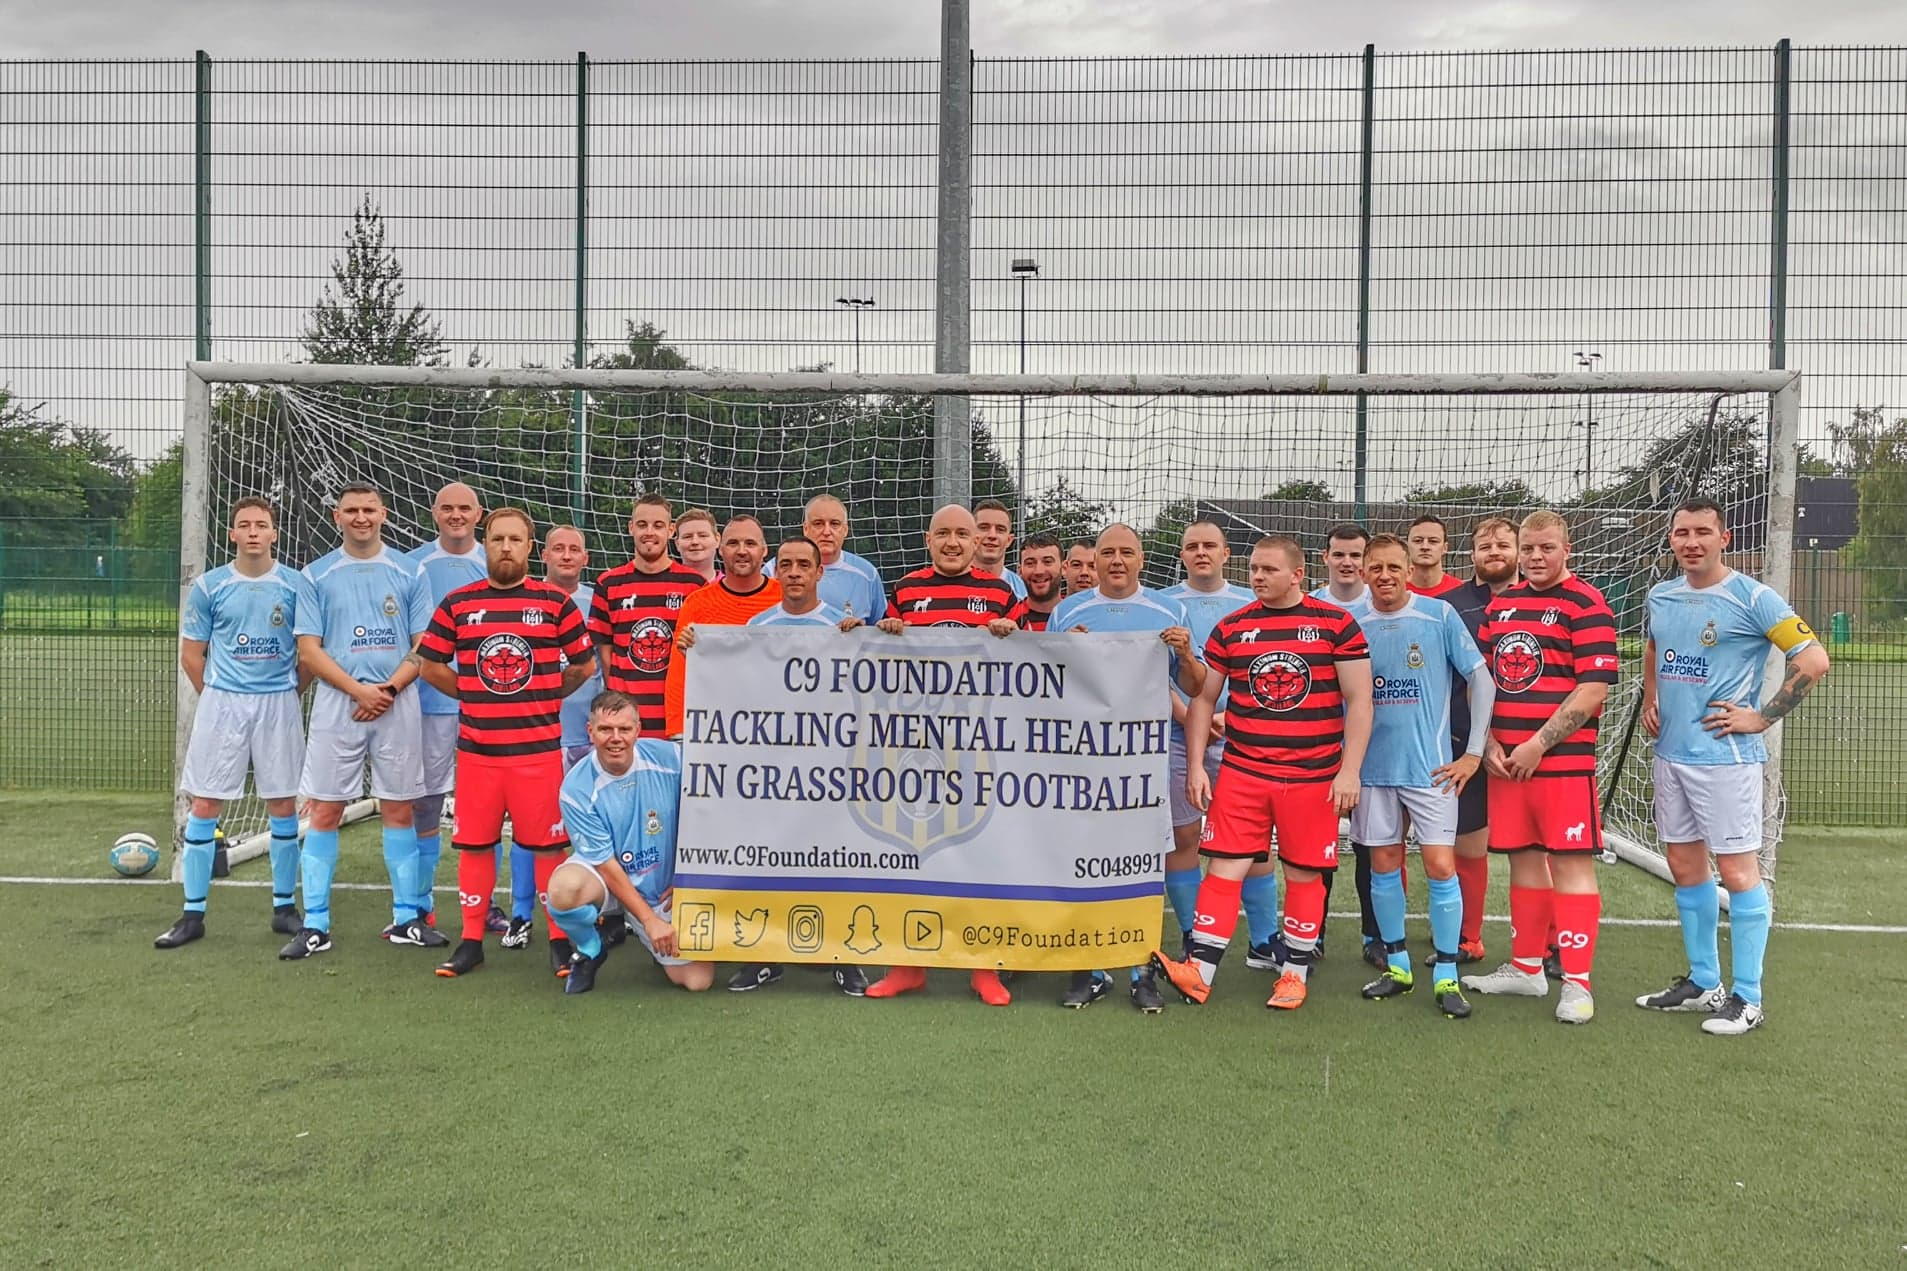 FUNDRAISING IN THE CAPITAL - 603 SQUADRON 1 V 7 C9 FOUNDATION AFC